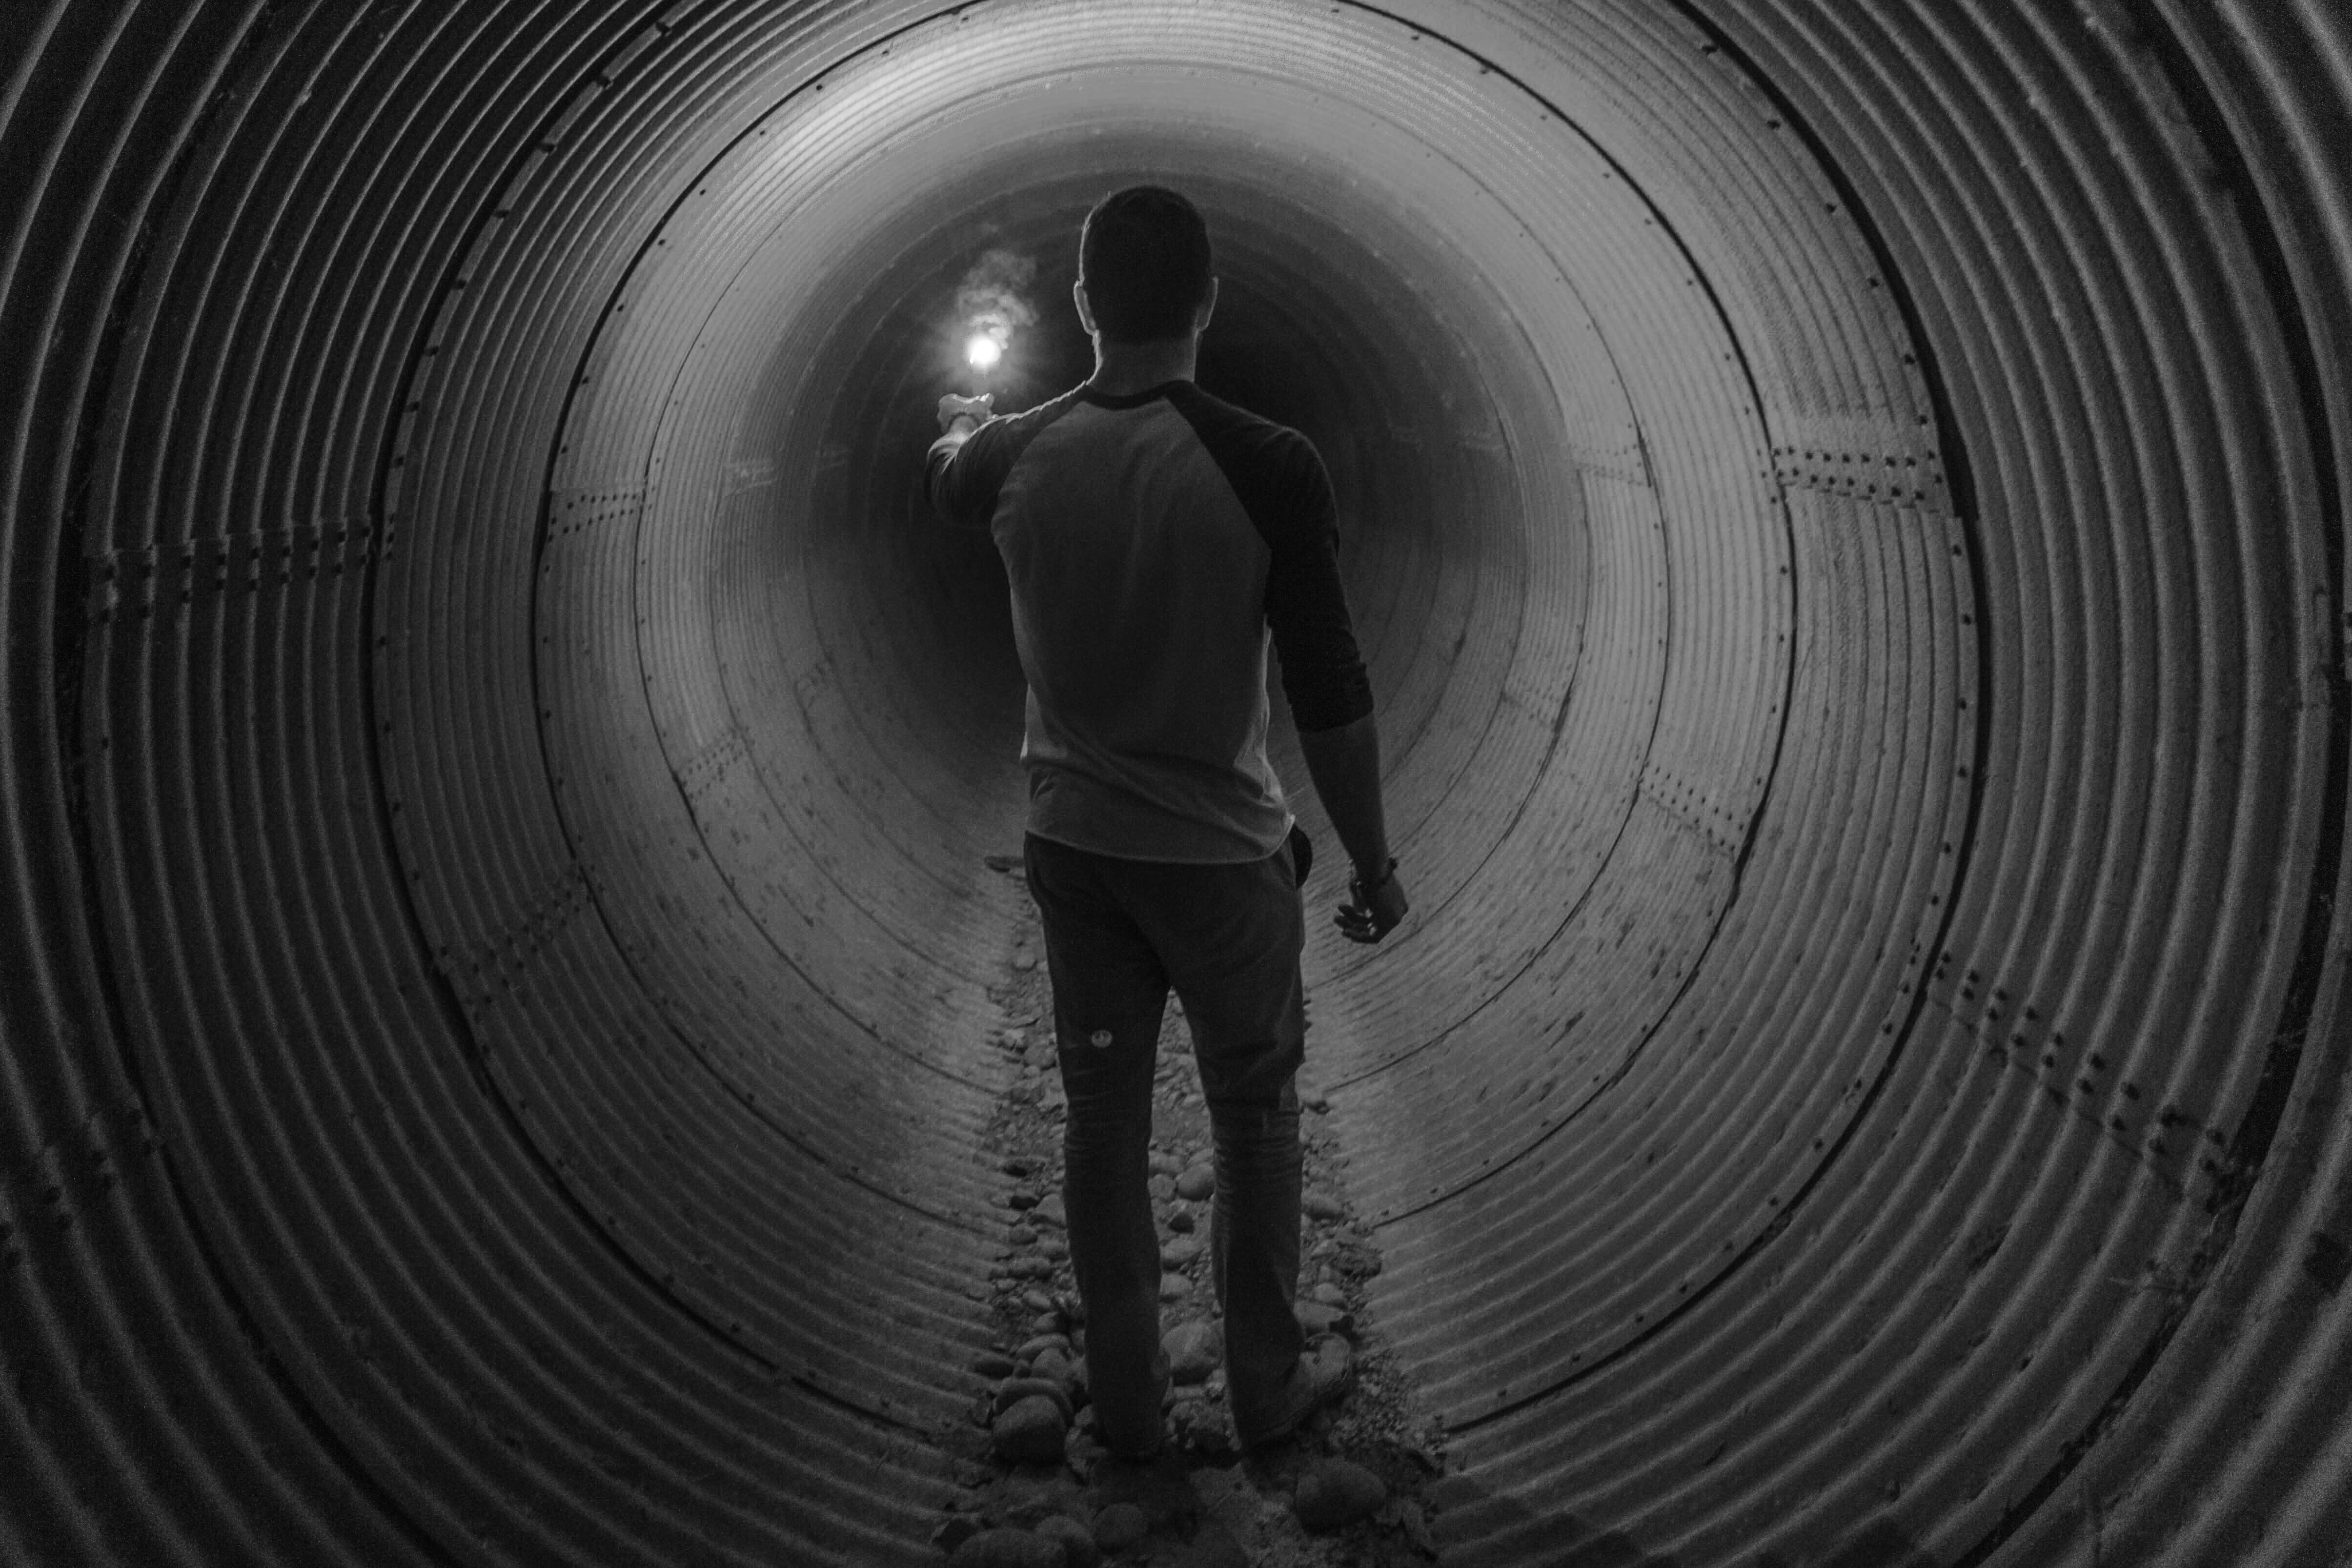 man holding light walking inside tunnel